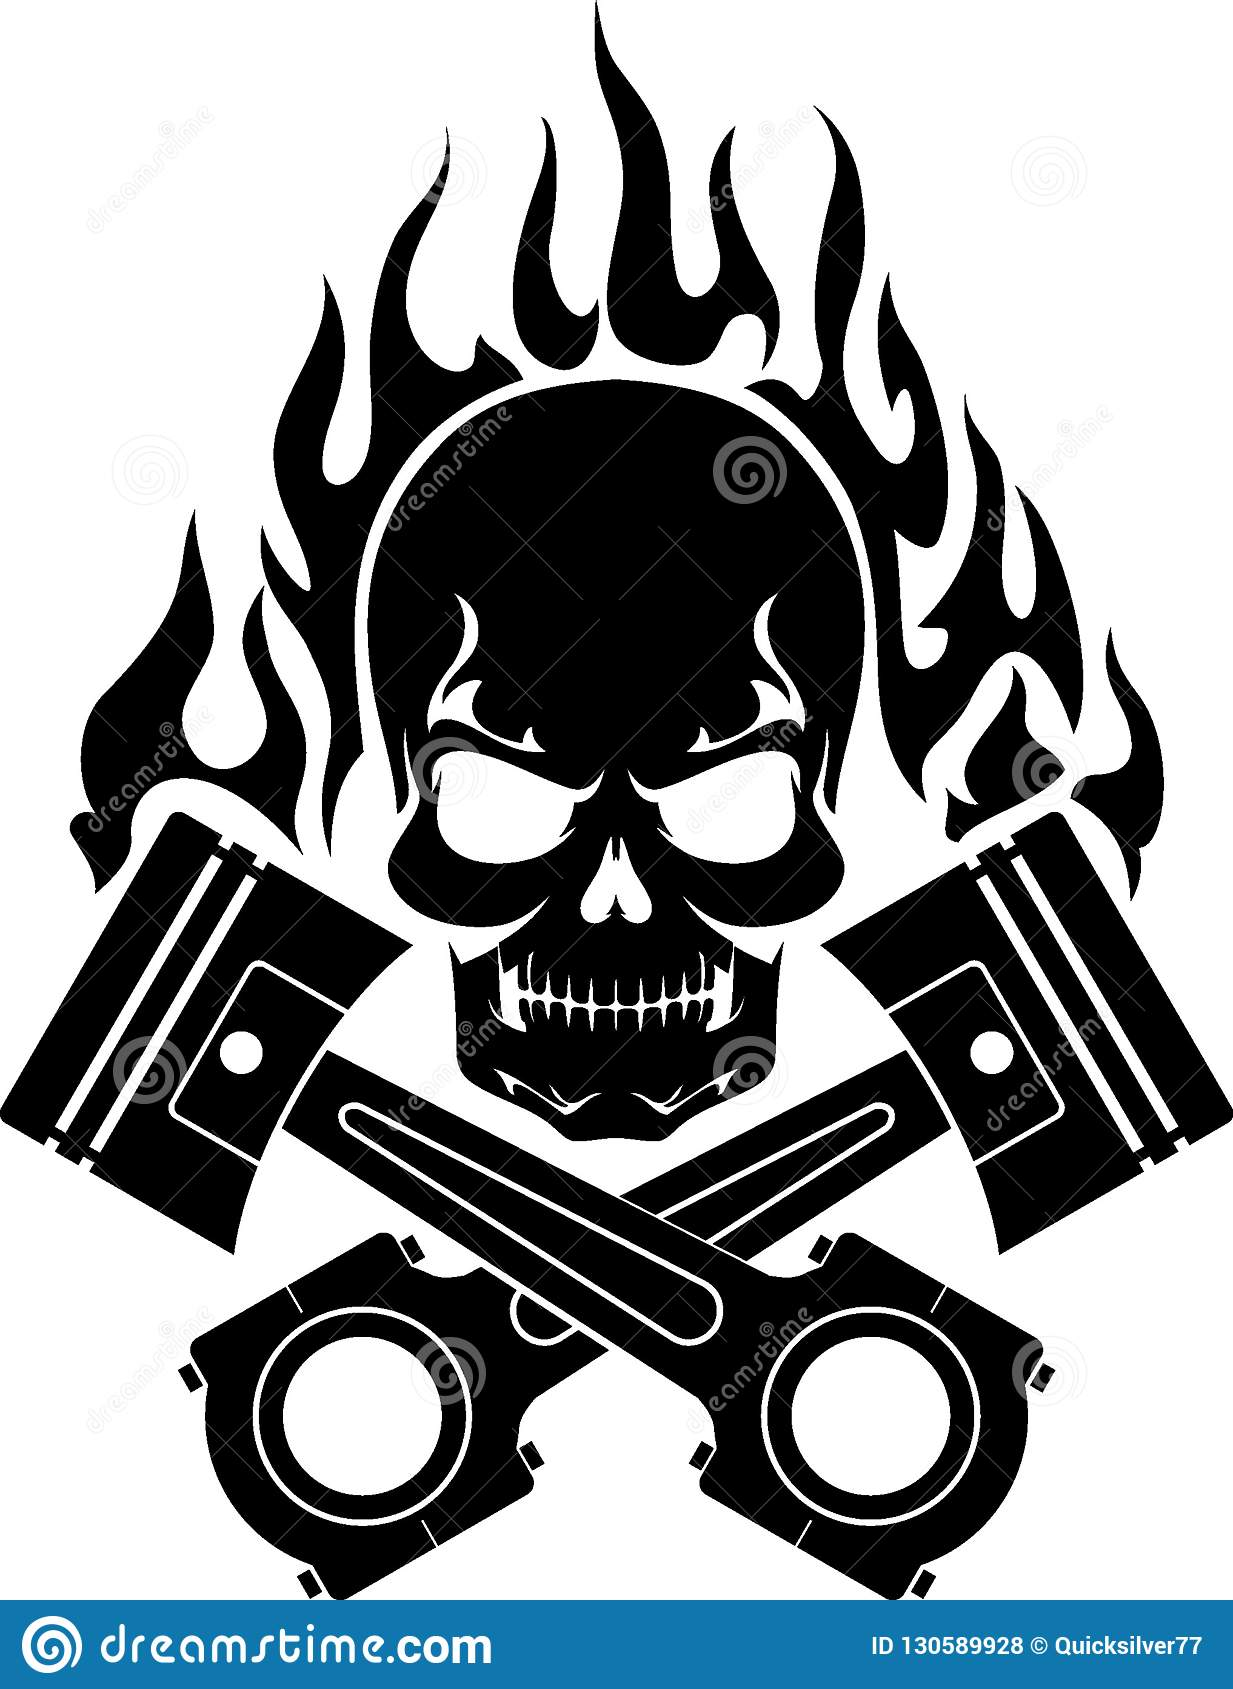 97835cfda59a4 Isolated vector illustration of Silhouette Skull and crossed piston with  abstract flame. More similar stock illustrations